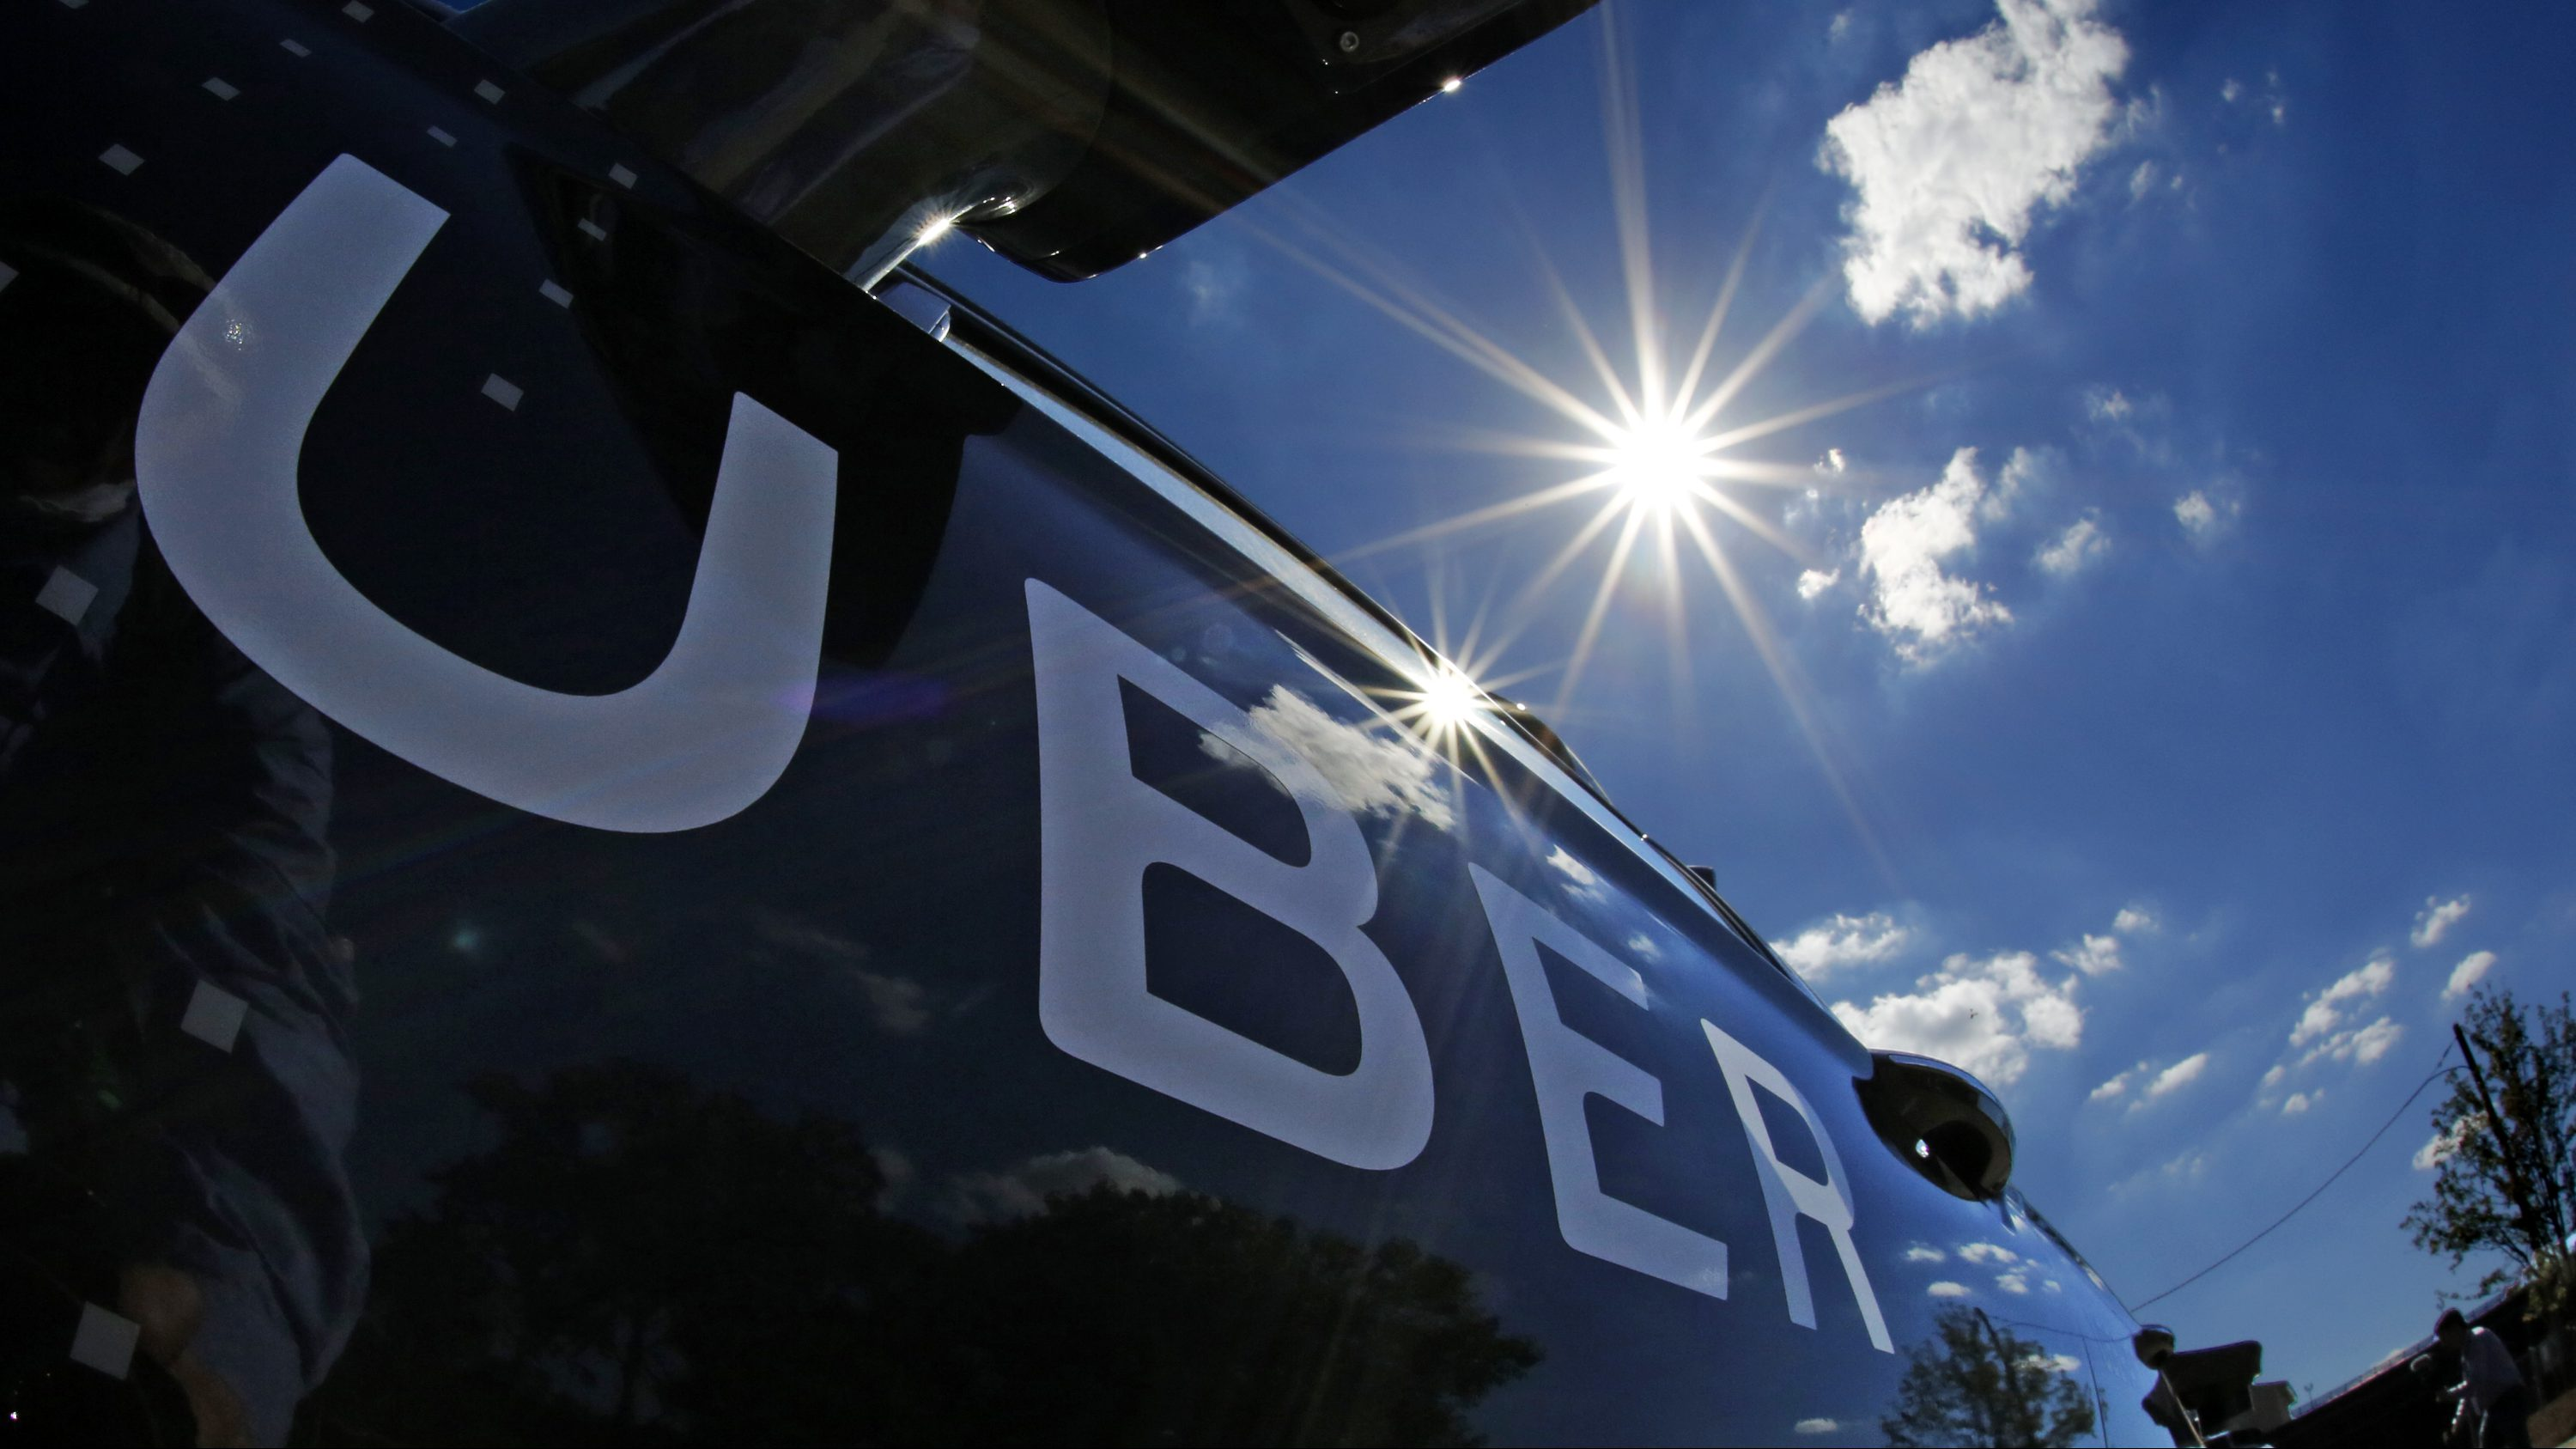 A self driving Uber sits ready to take journalists for a ride during a media preview in Pittsburgh, Monday, Sept. 12, 2016. (AP Photo/Gene J. Puskar)